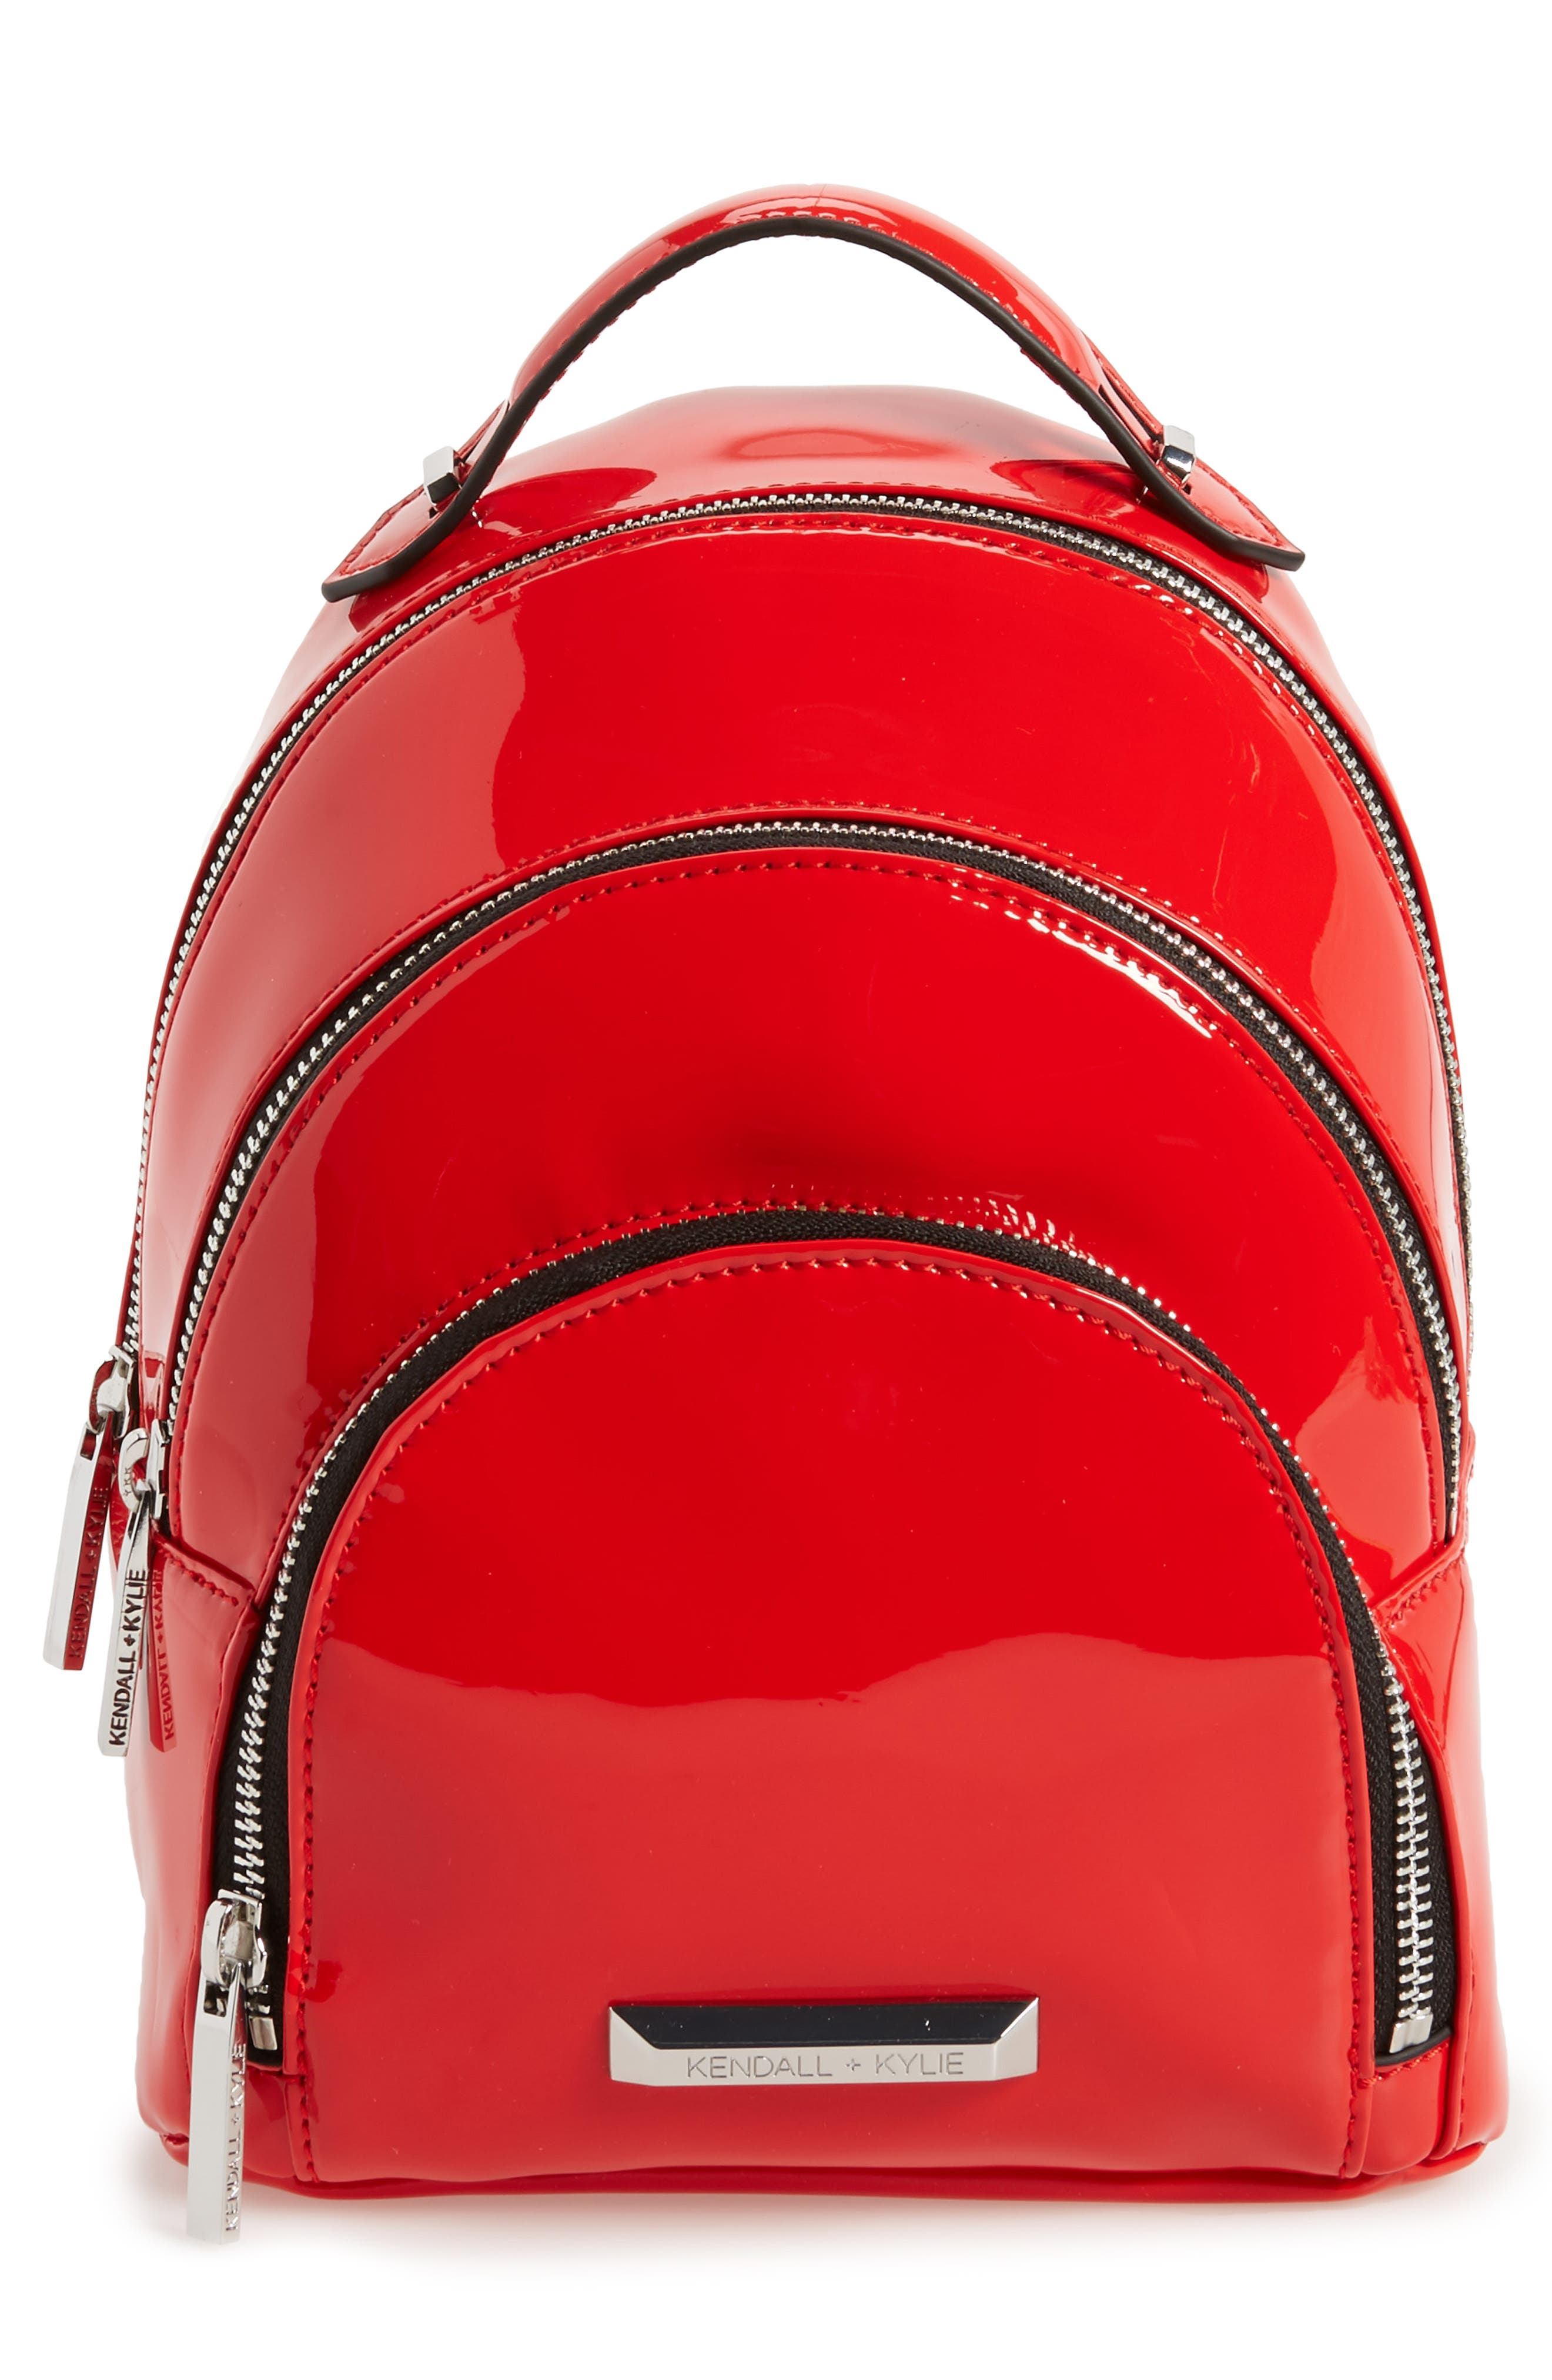 KENDALL + KYLIE Mini Sloane Backpack